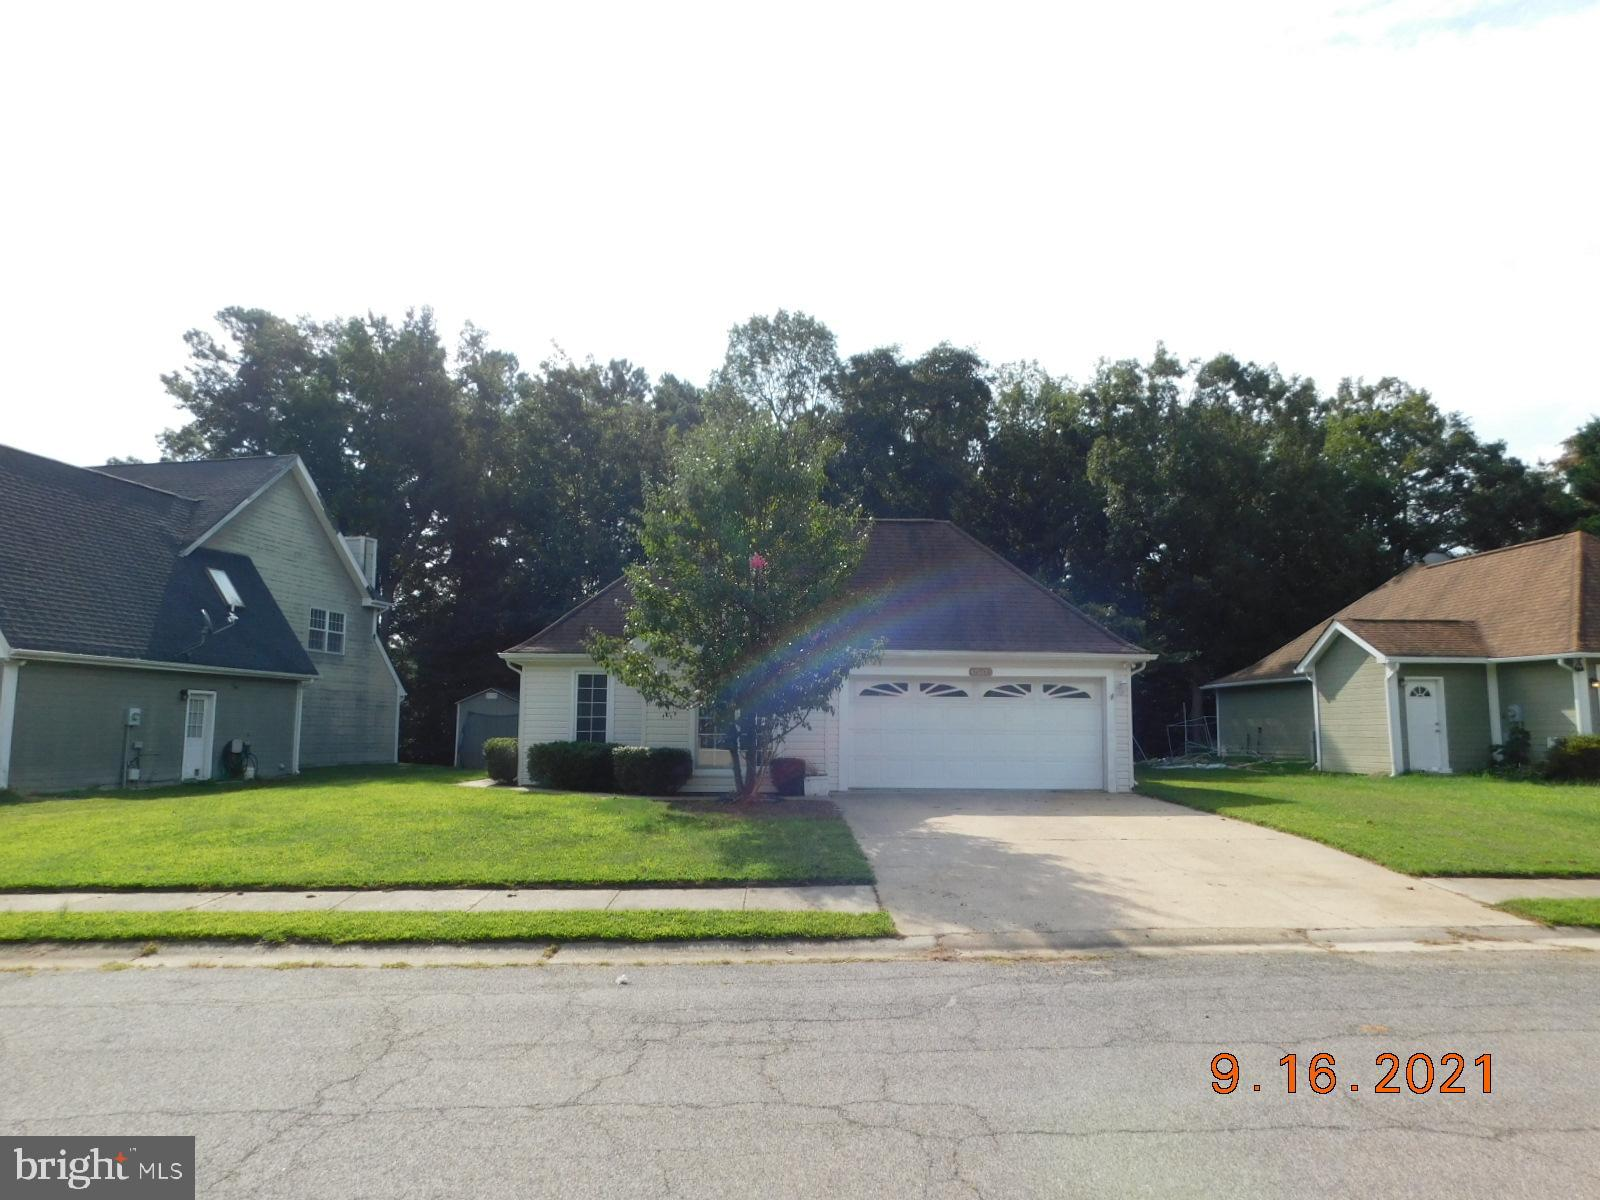 THIS SINGLE LEVEL, 3 BEDROOM, 2 BATH HOME HAS ALL NEW CARPET, FRESH PAINT AND IS WAITING FOR THE NEW